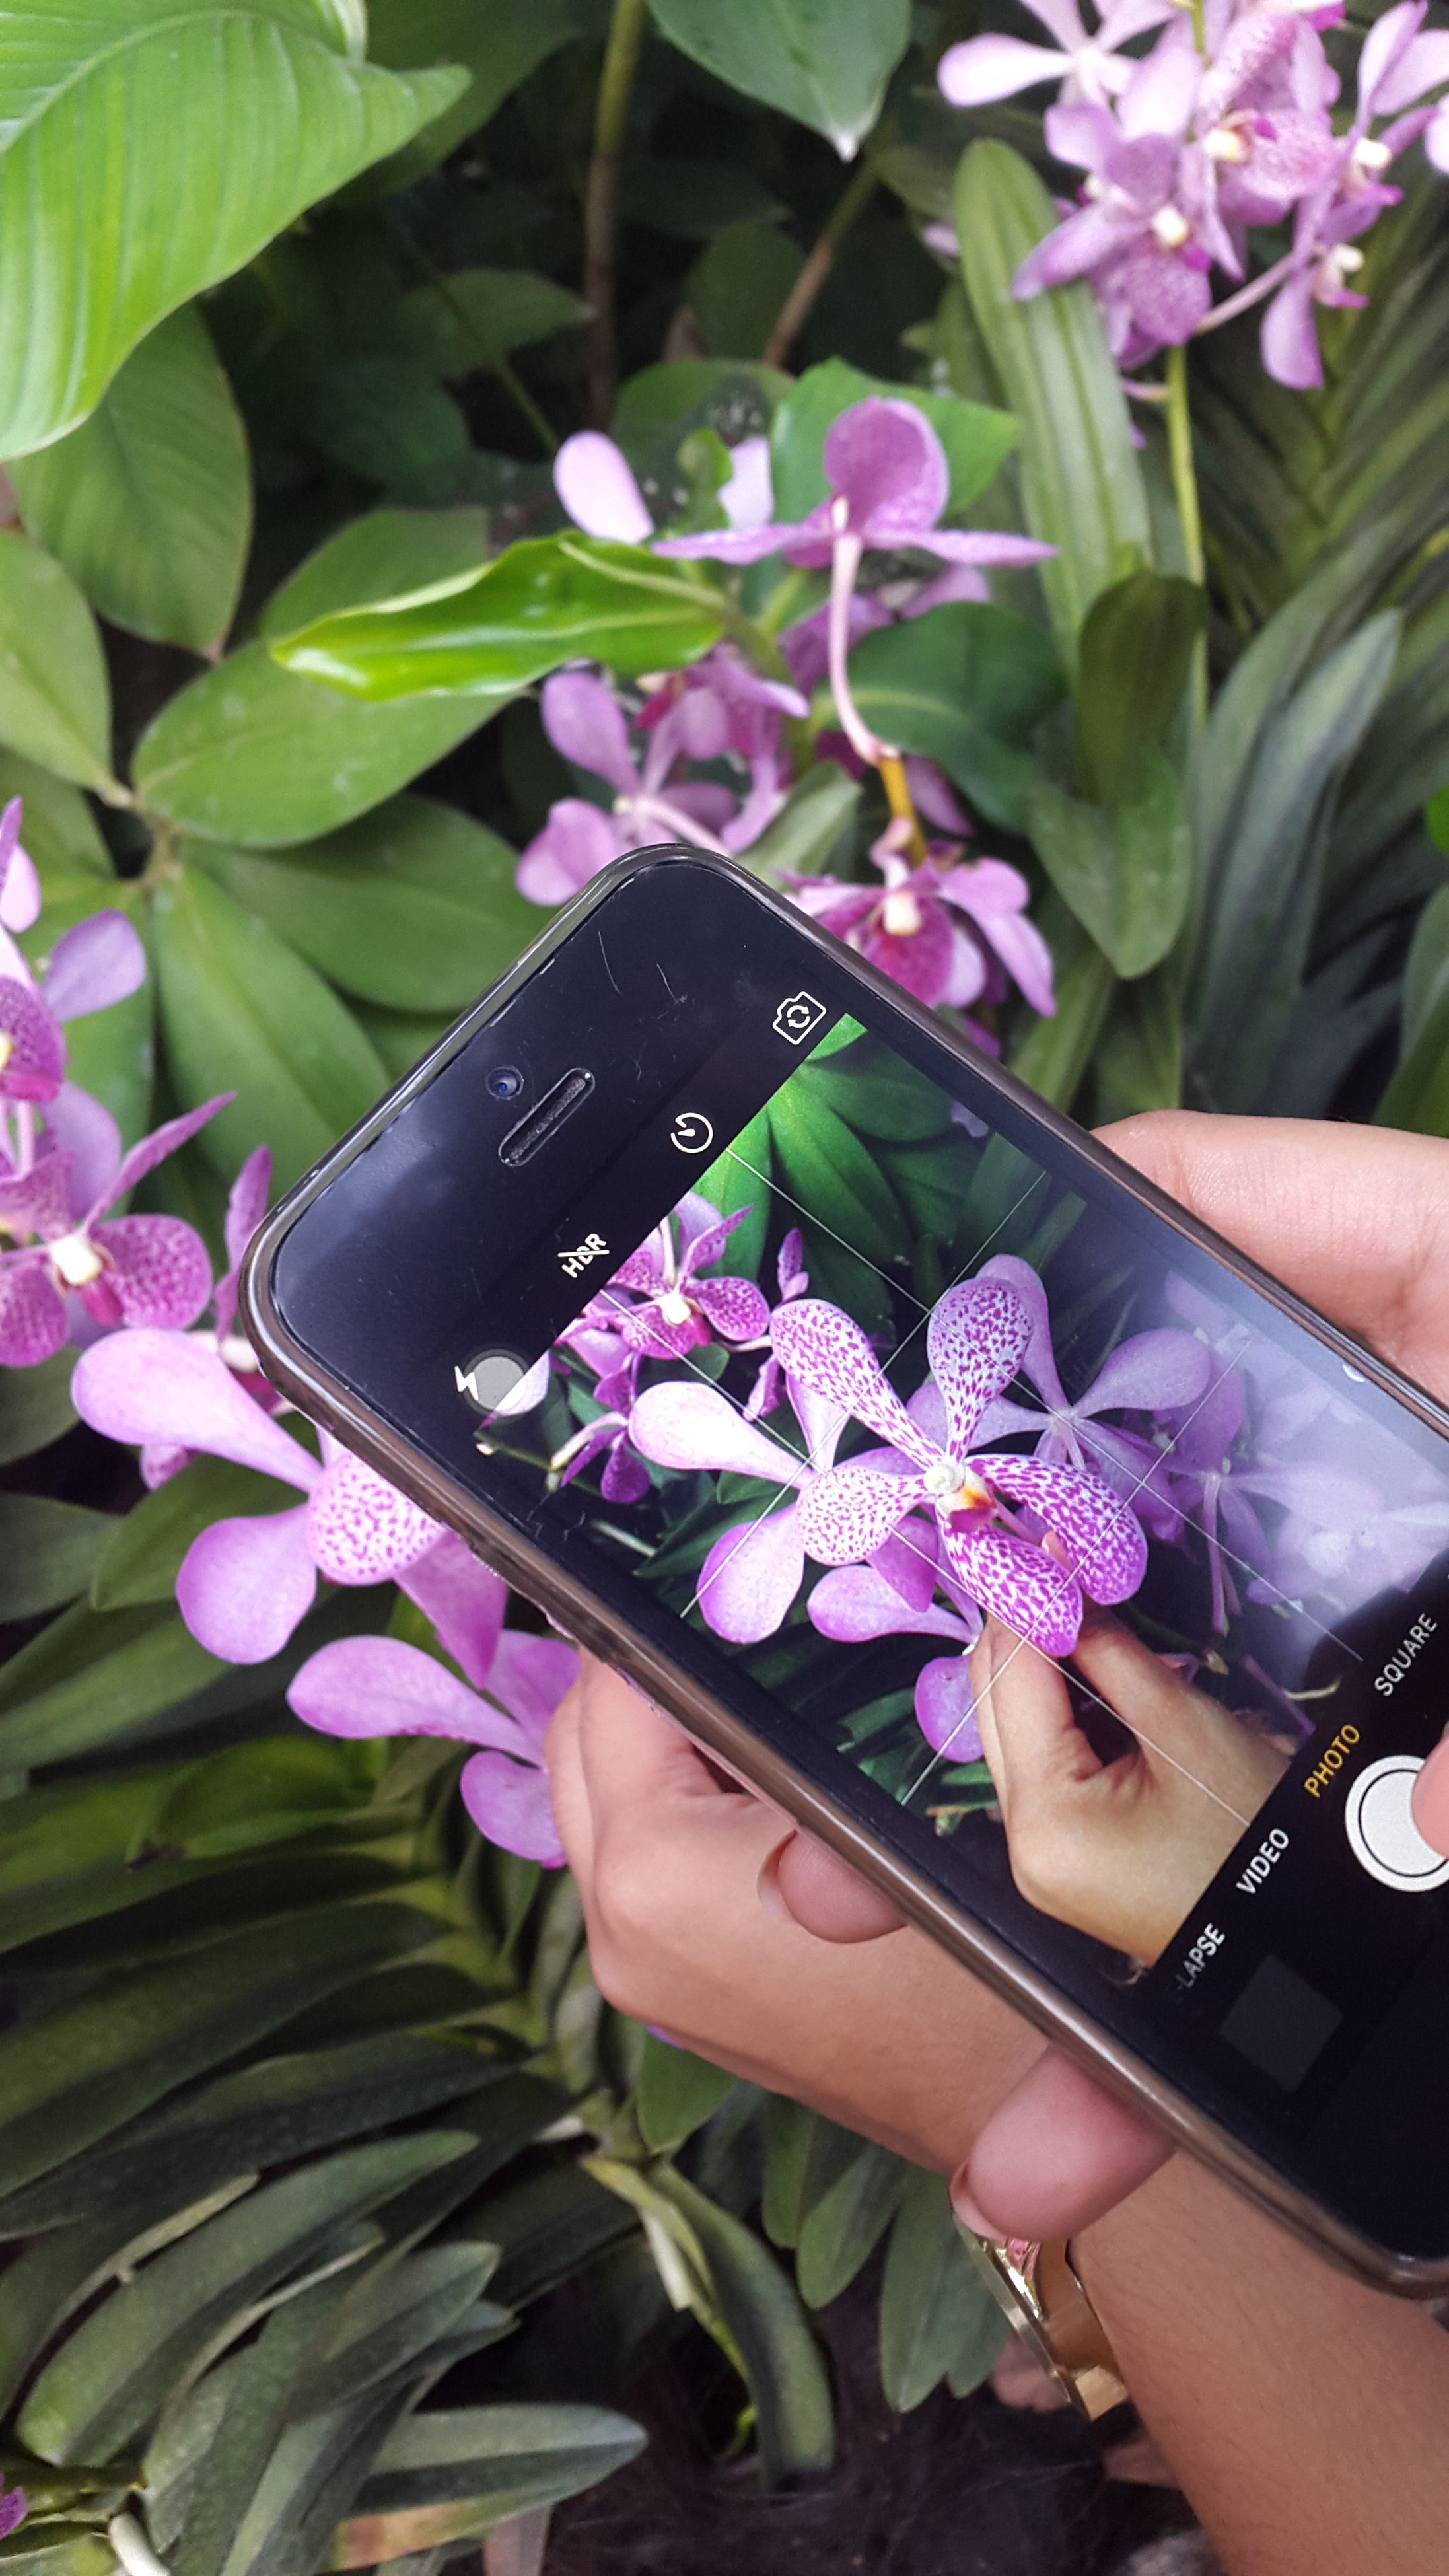 human hand, flower, communication, real people, human body part, plant, day, mobile phone, purple, technology, wireless technology, holding, leaf, freshness, one person, outdoors, close-up, fragility, nature, beauty in nature, women, flower head, people